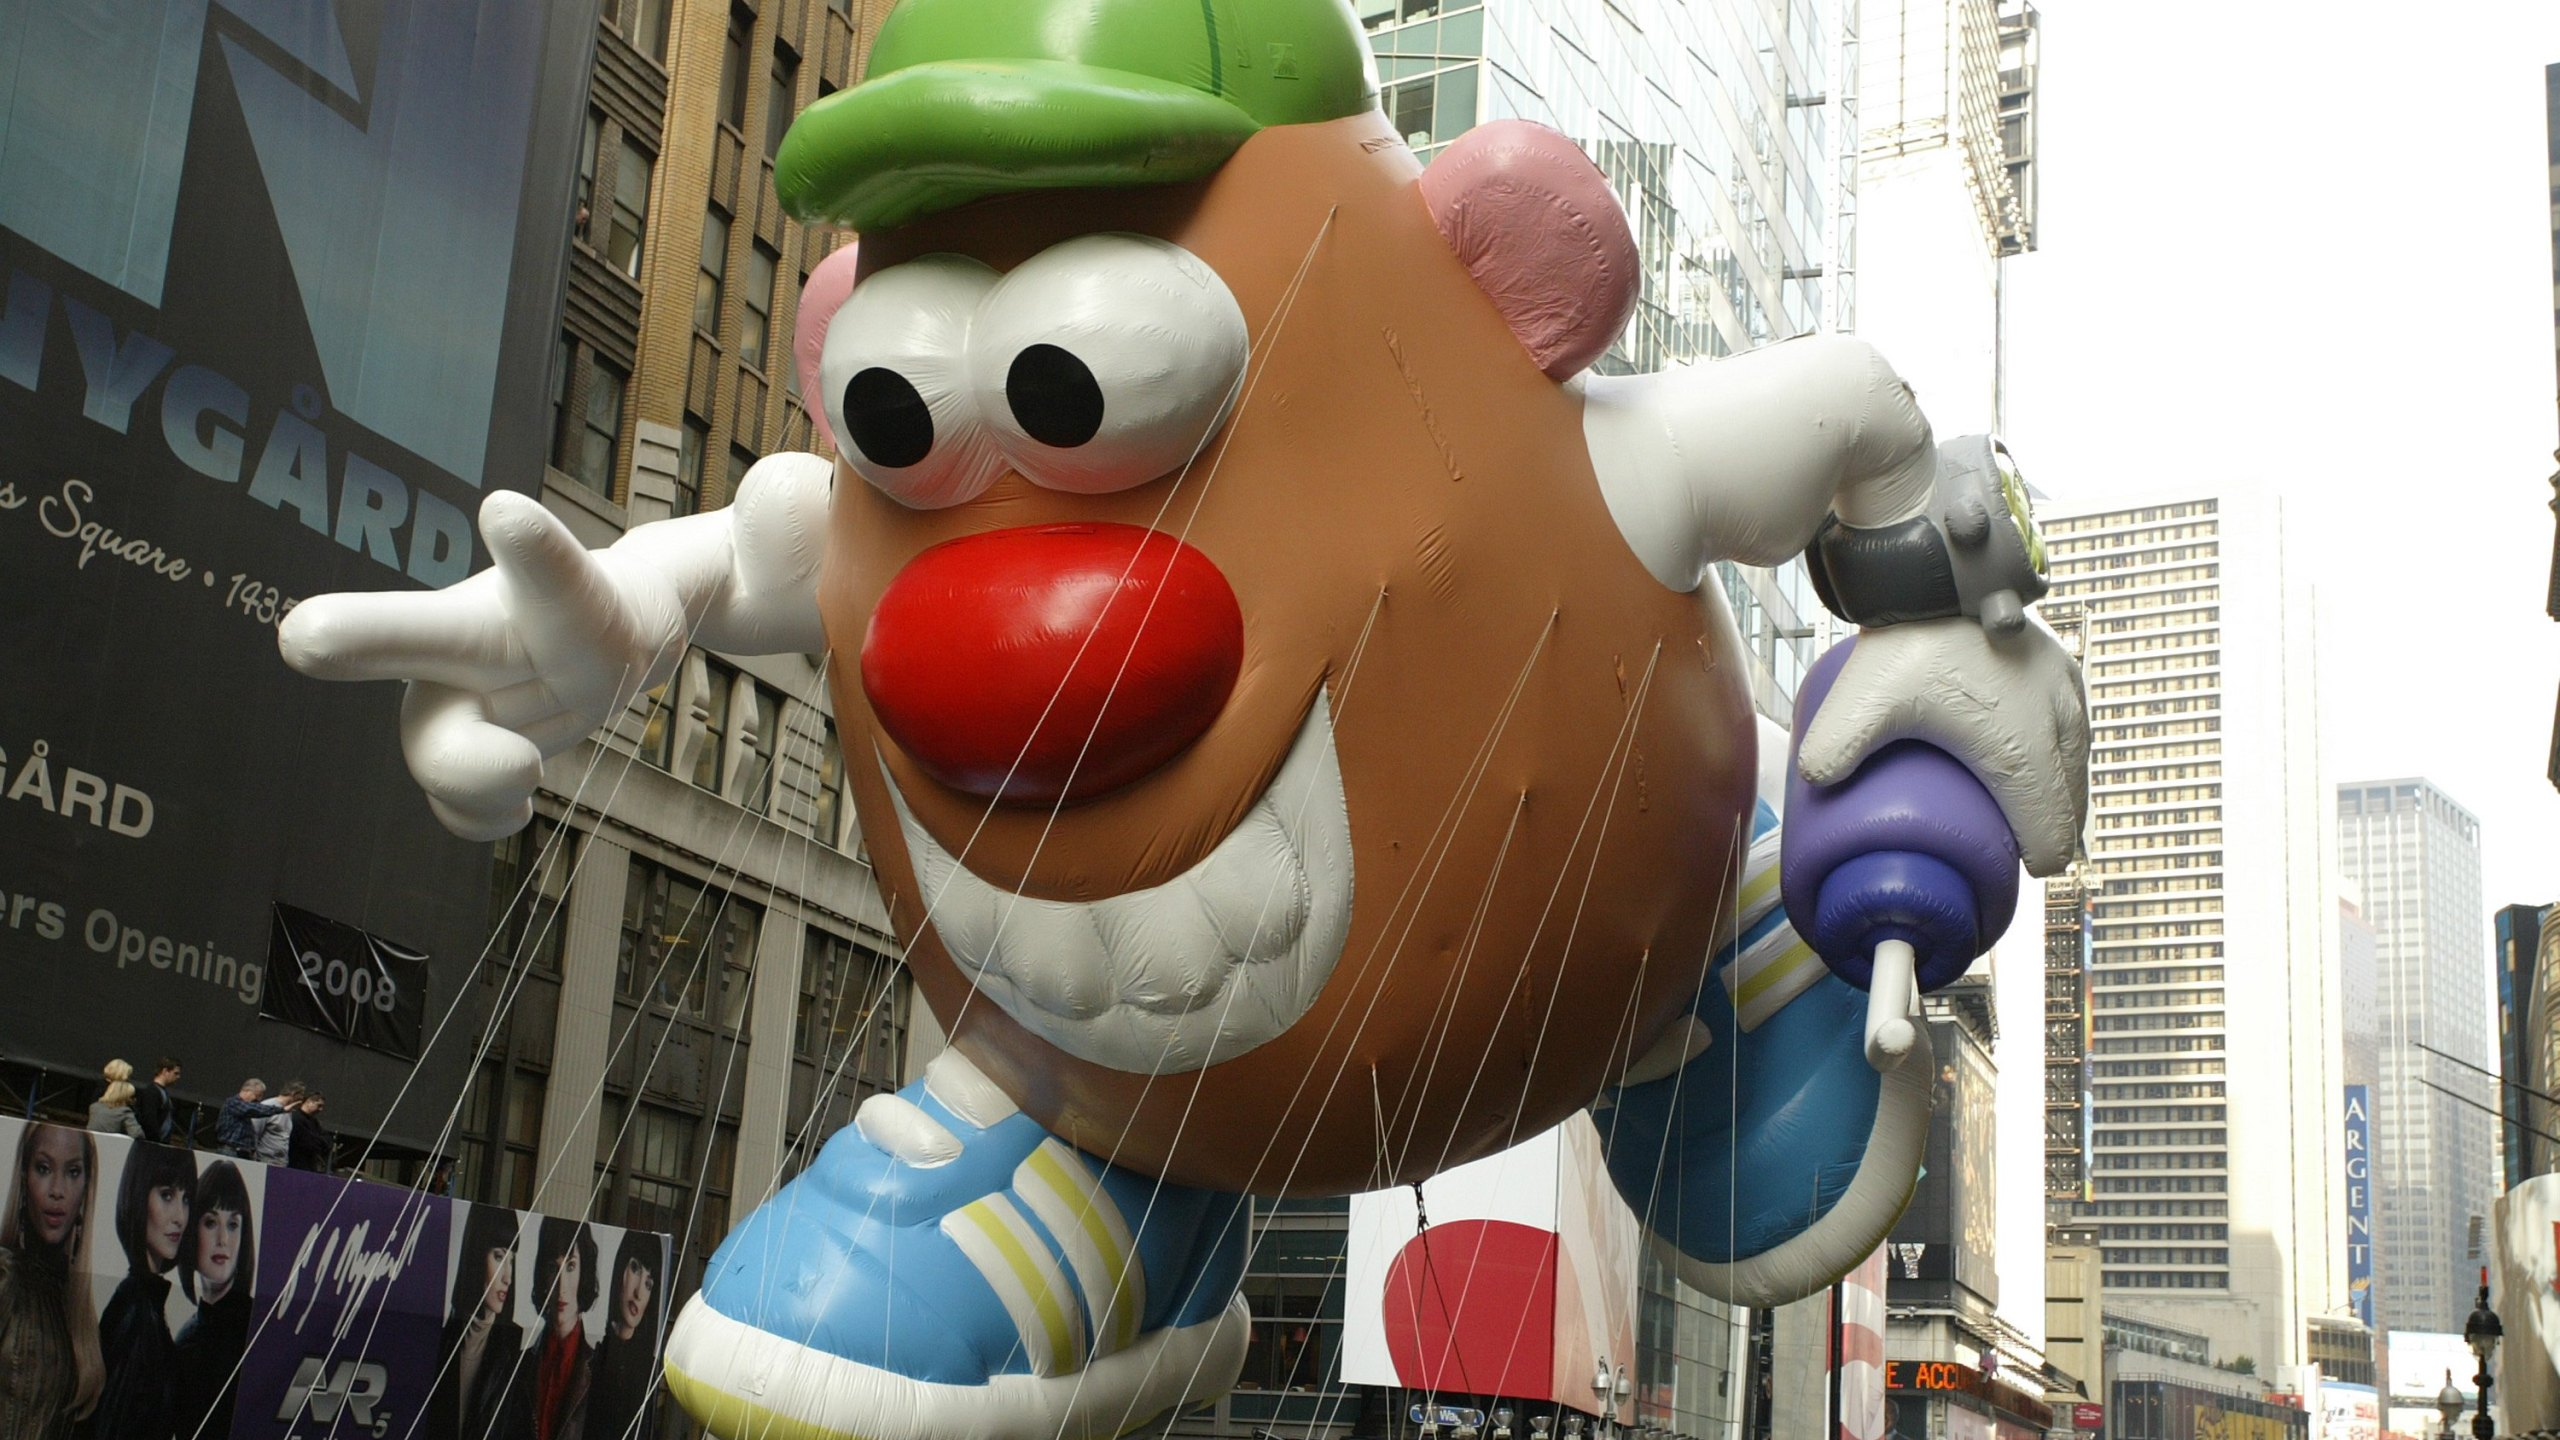 The Mr. Potato Head balloon at the 81st Annual Macy's Thanksgiving Day Parade in 2007 (Photo by: Curtis Means/NBC NewsWire)